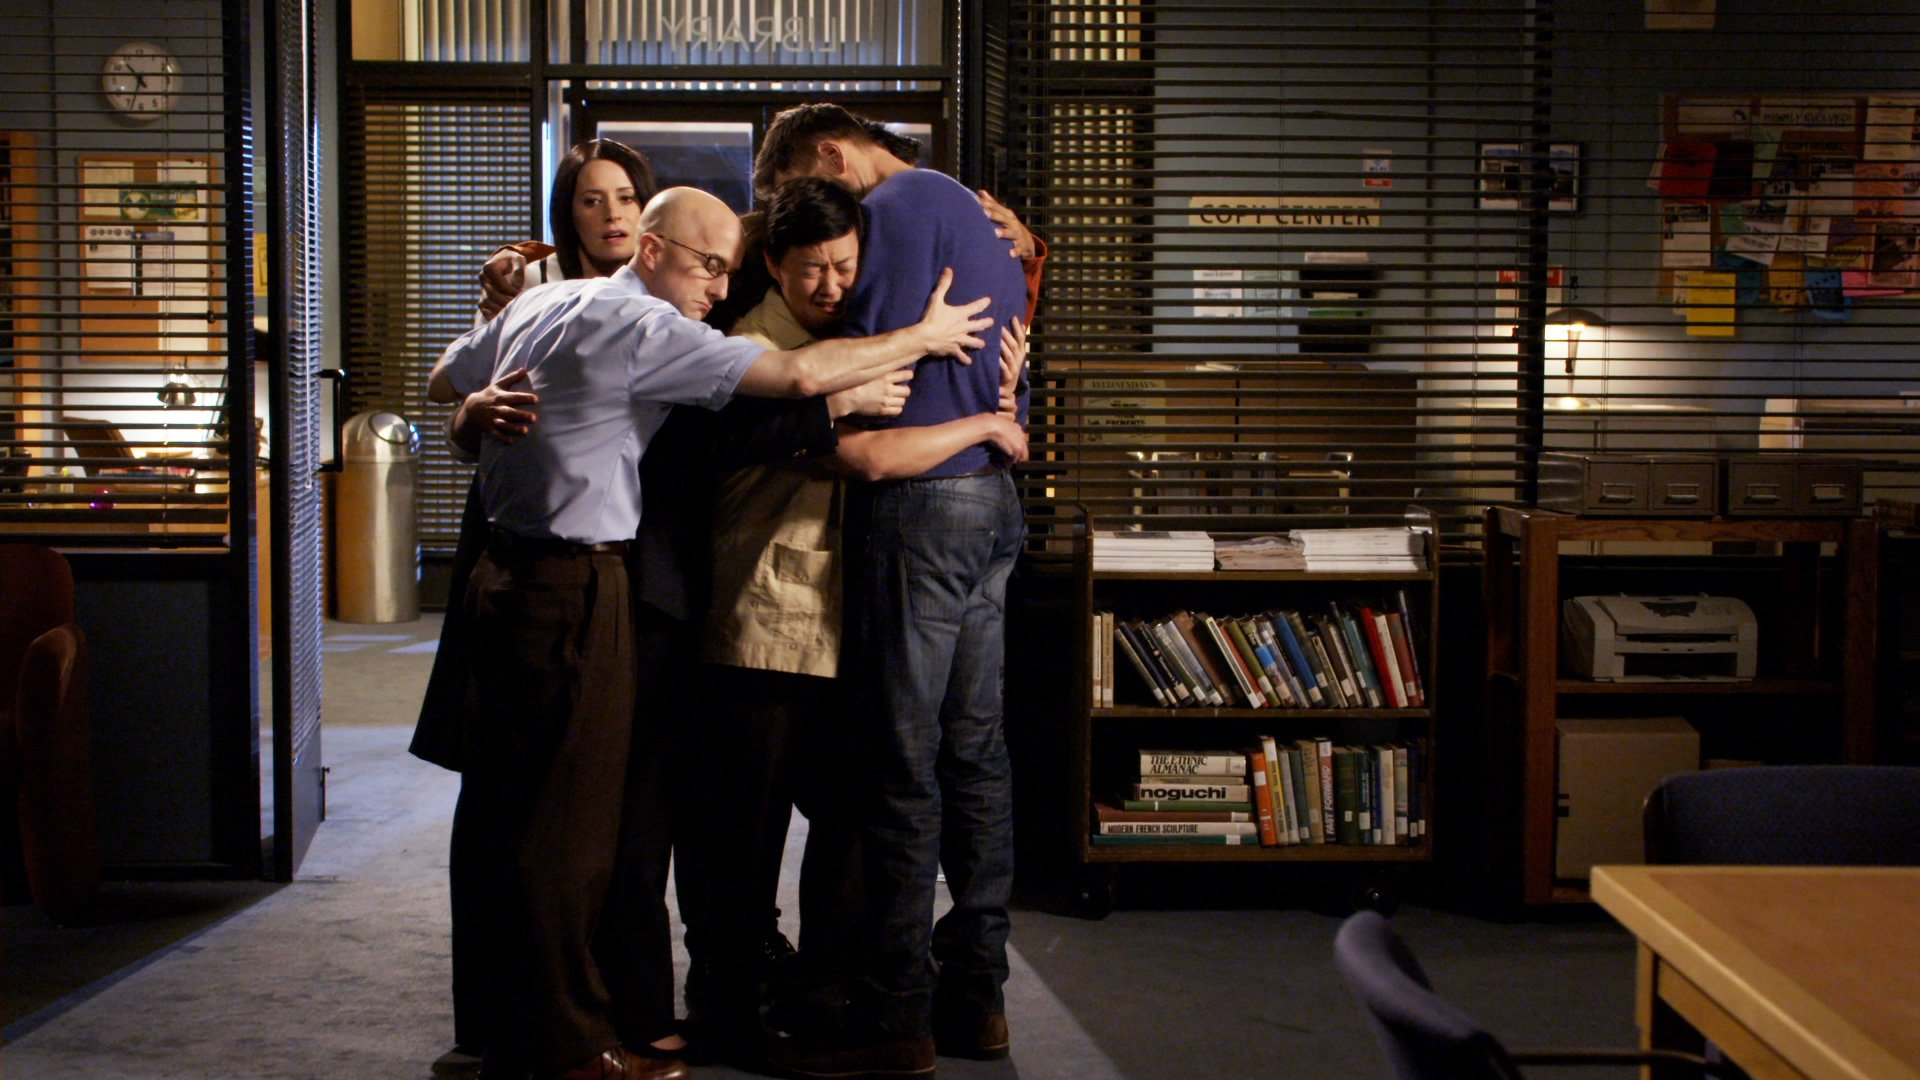 Community - 06x13 - Emotional Consequences of Broadcast Television